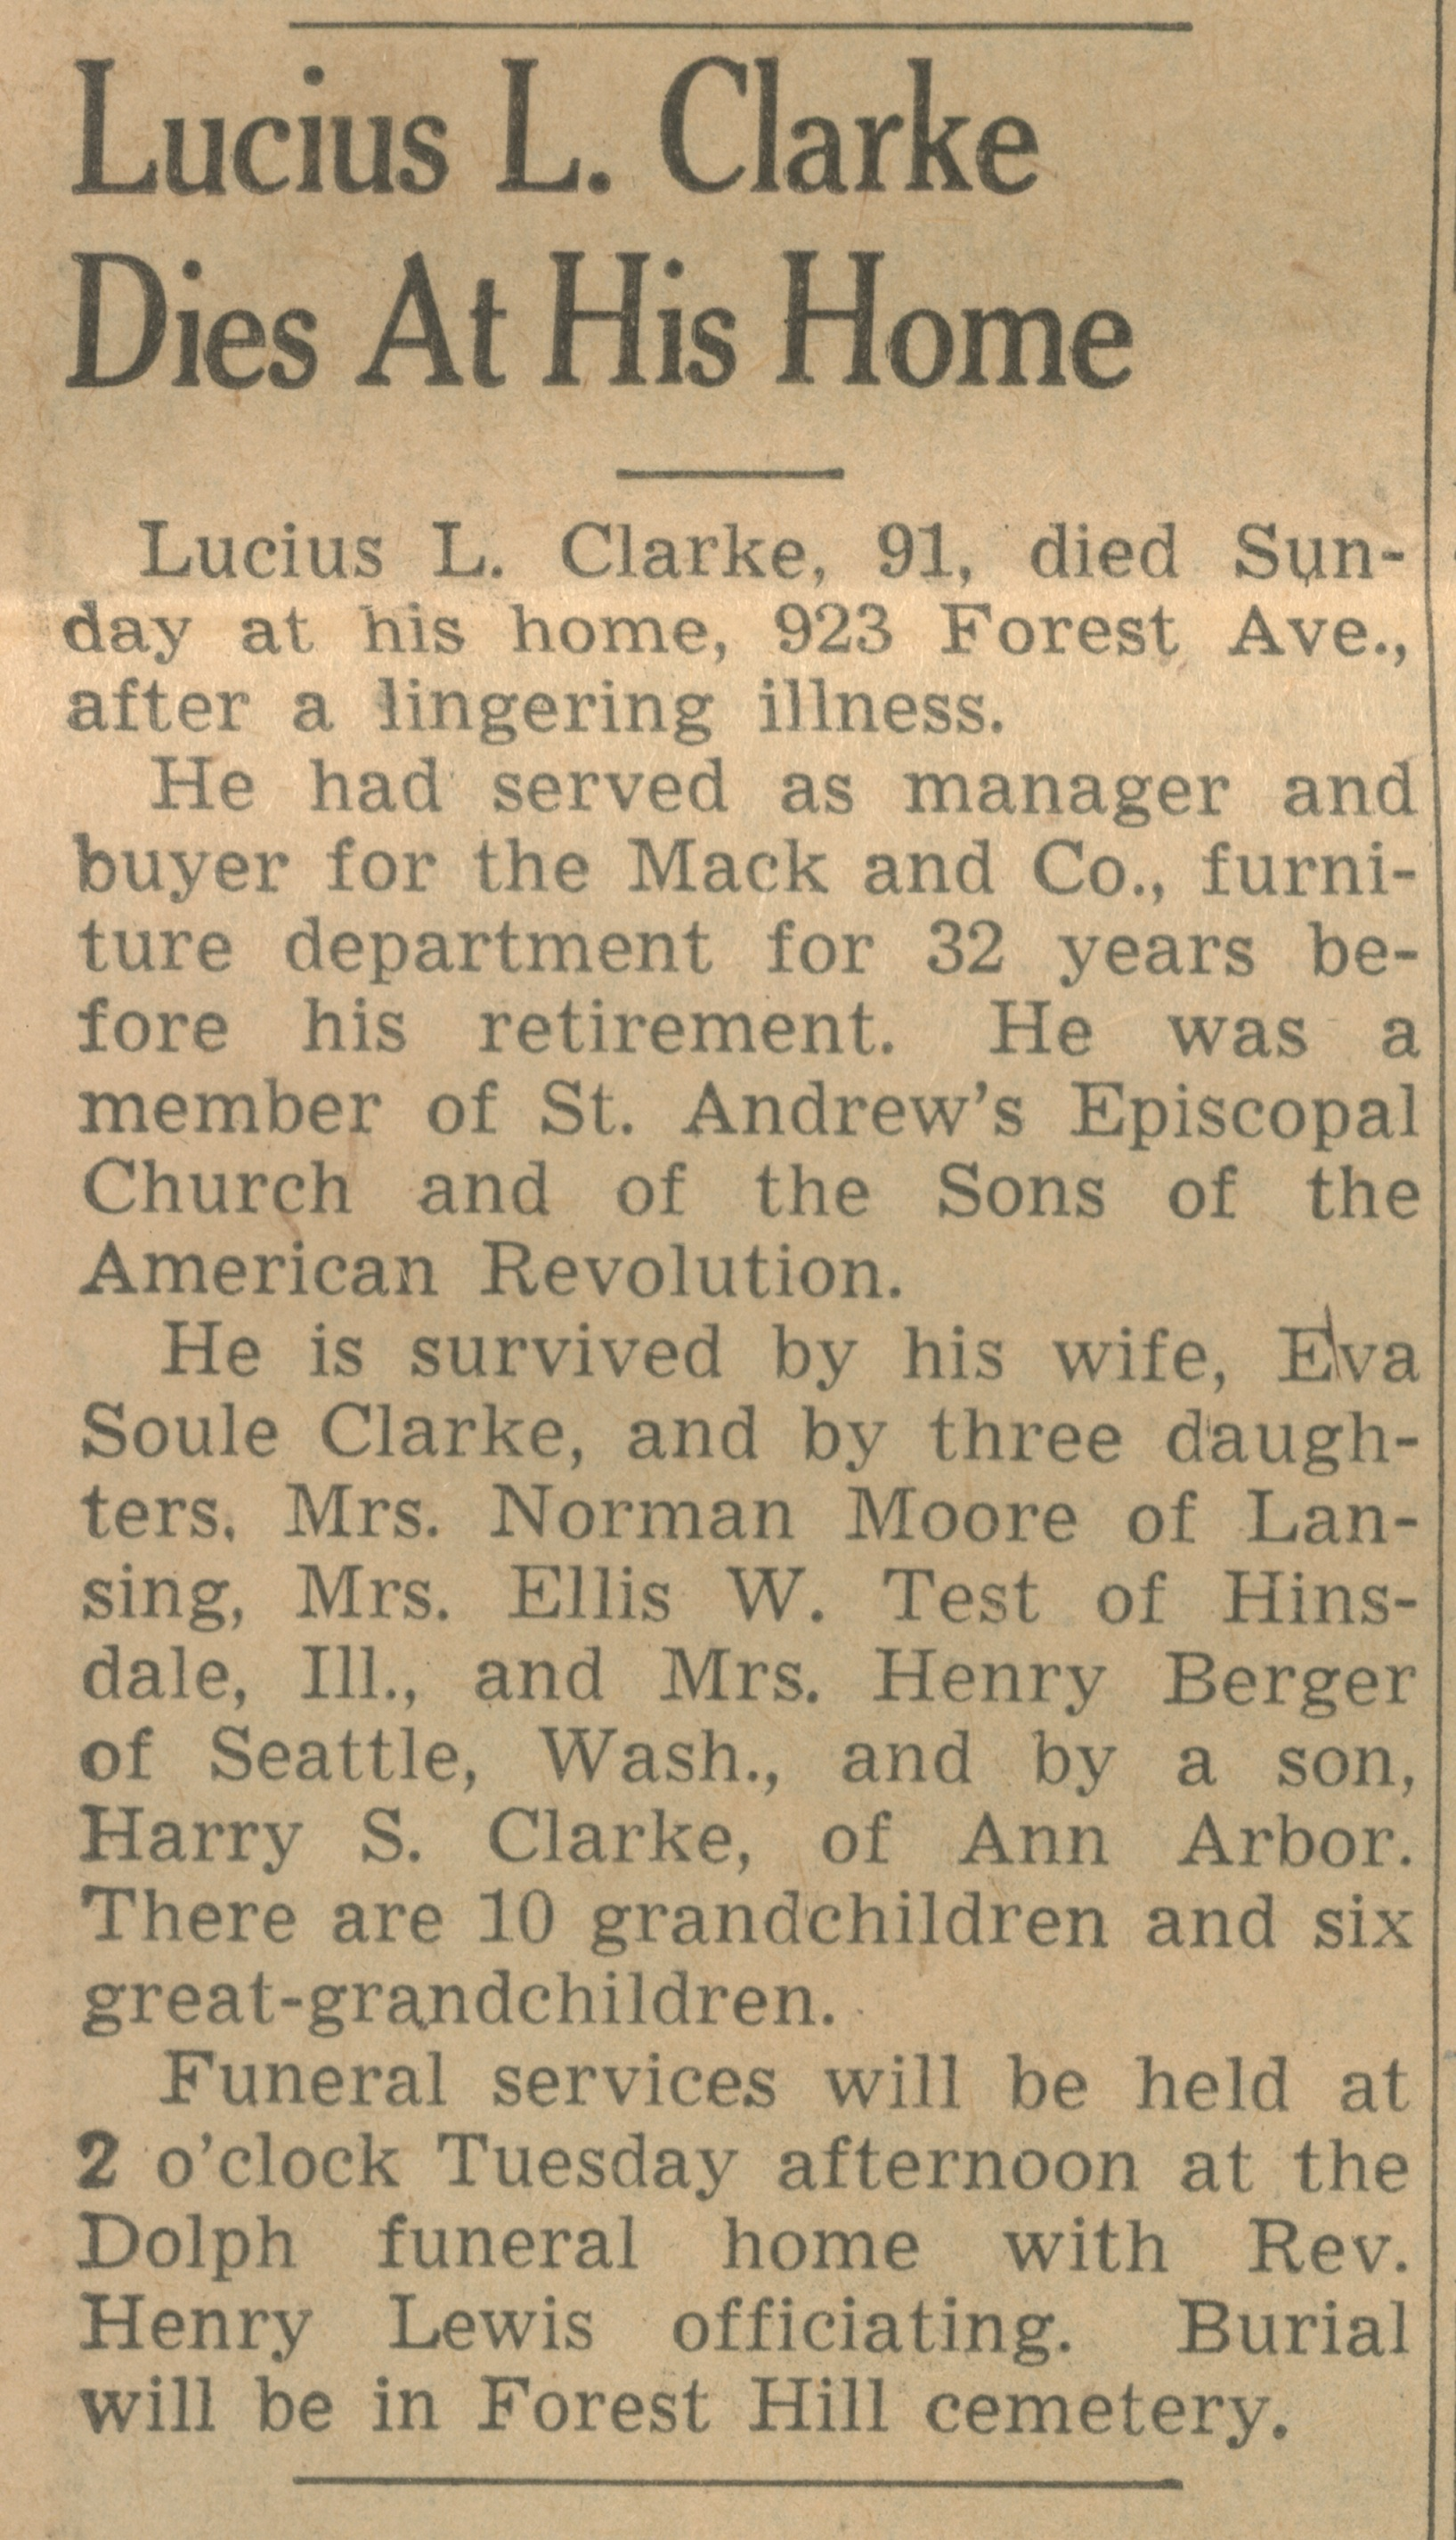 Lucius L. Clarke Dies At His Home image